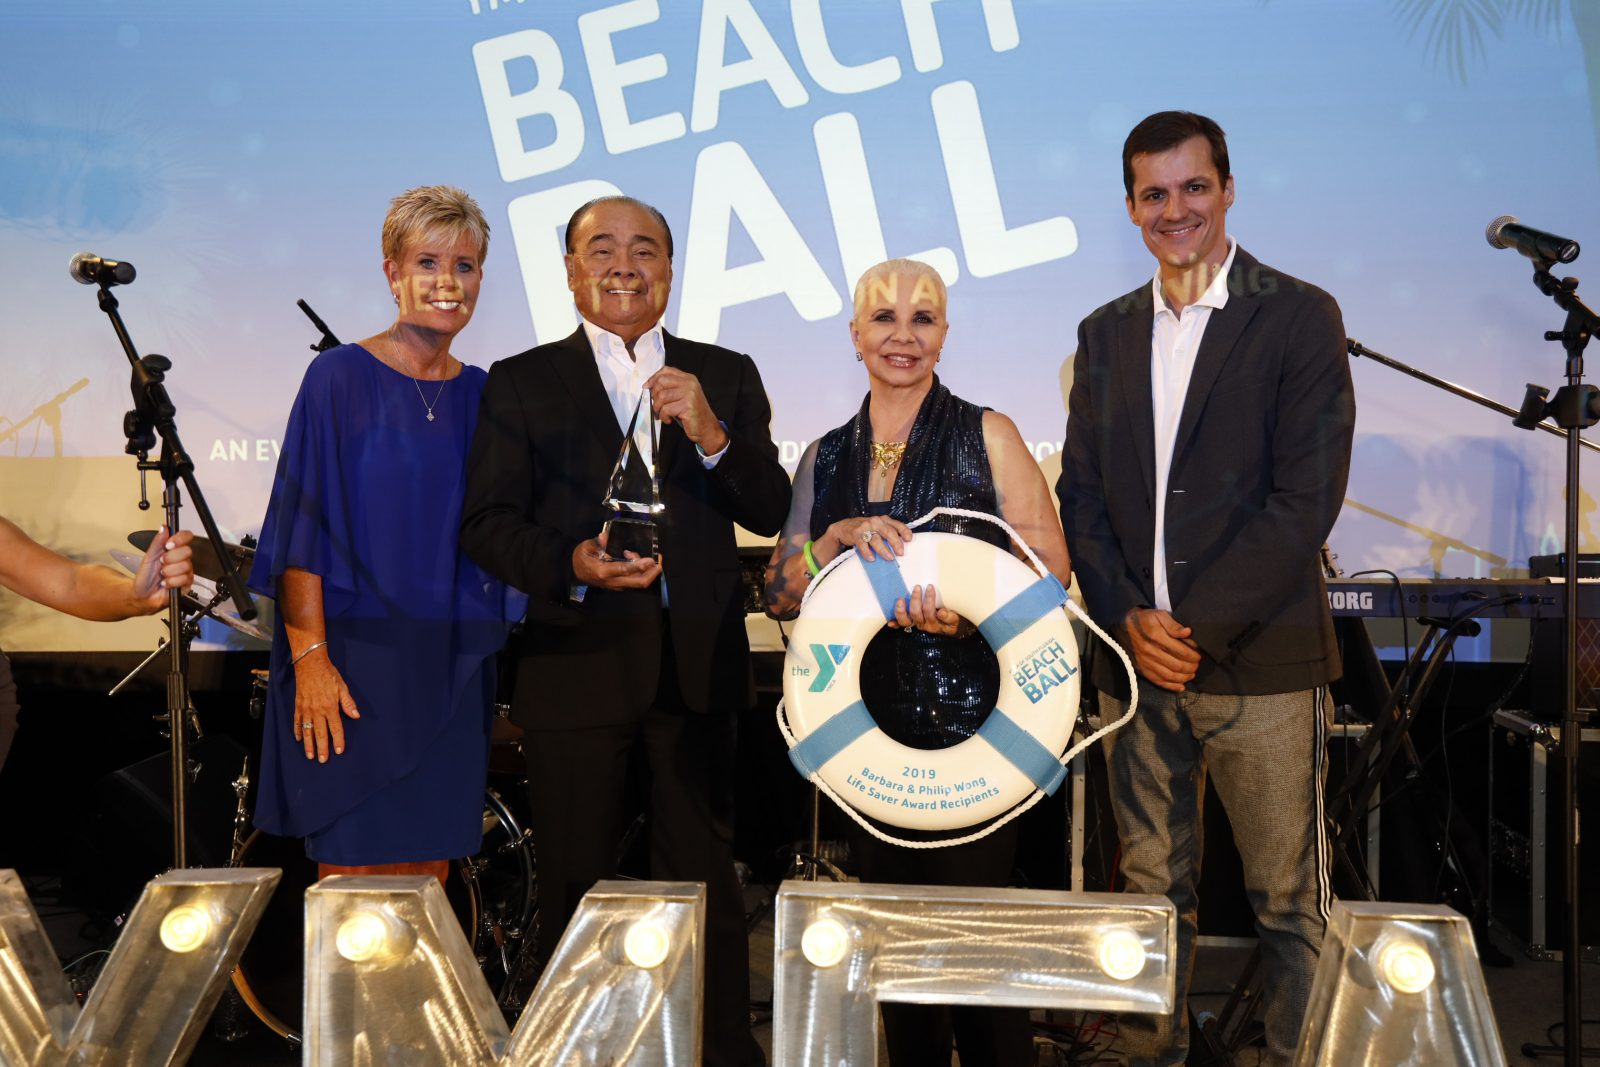 YMCA BEACH BALL BRINGS AWARENESS TO NEED FOR KIDS TO LEARN TO SWIM WITH FAMILY'S NON-FATAL DROWNING STORY -Post Event